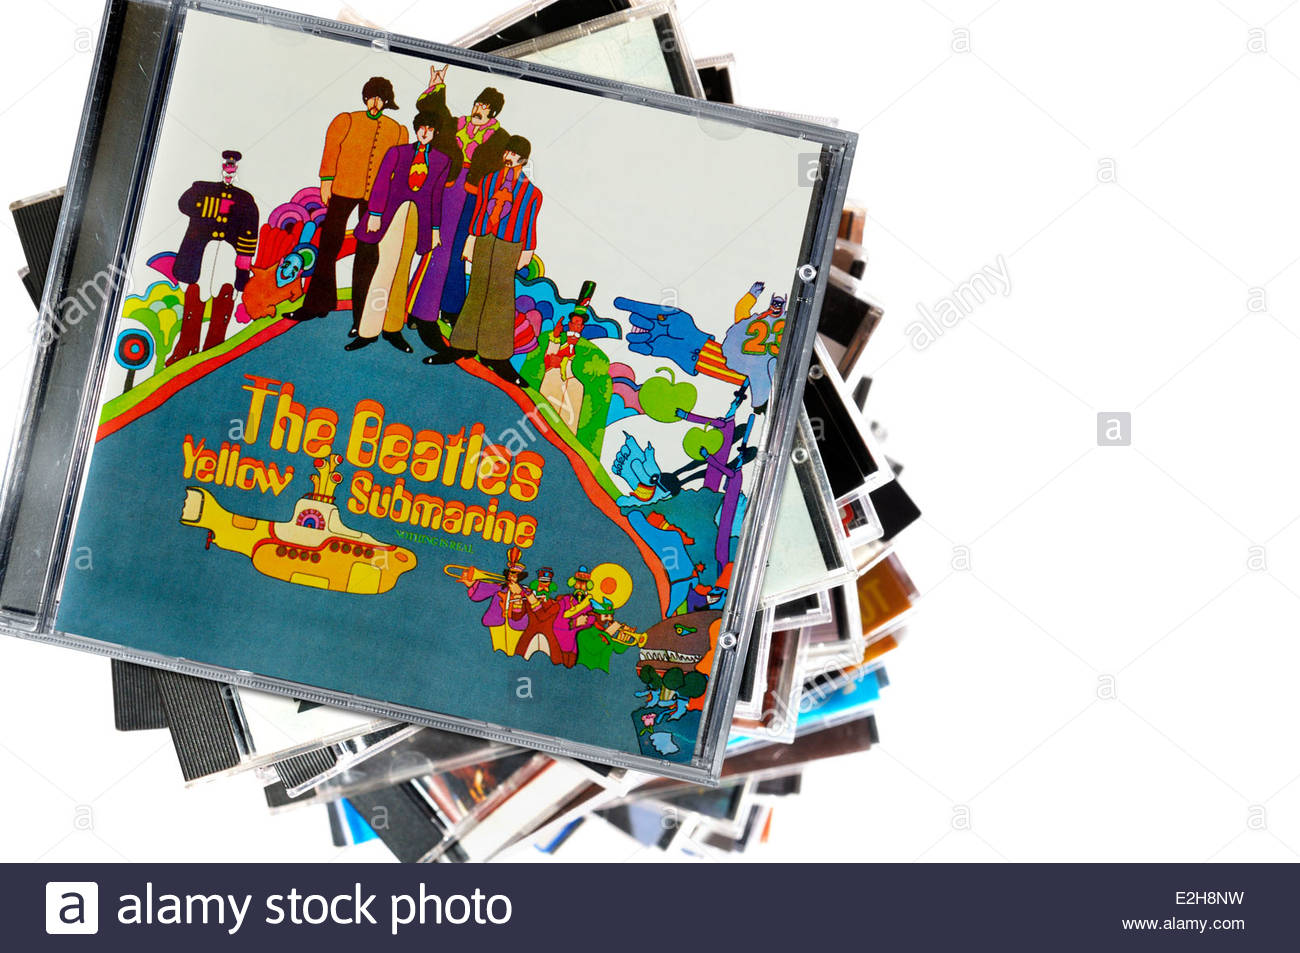 The Beatles 1969 album Yellow Submarine, piled music CD cases, England - Stock Image